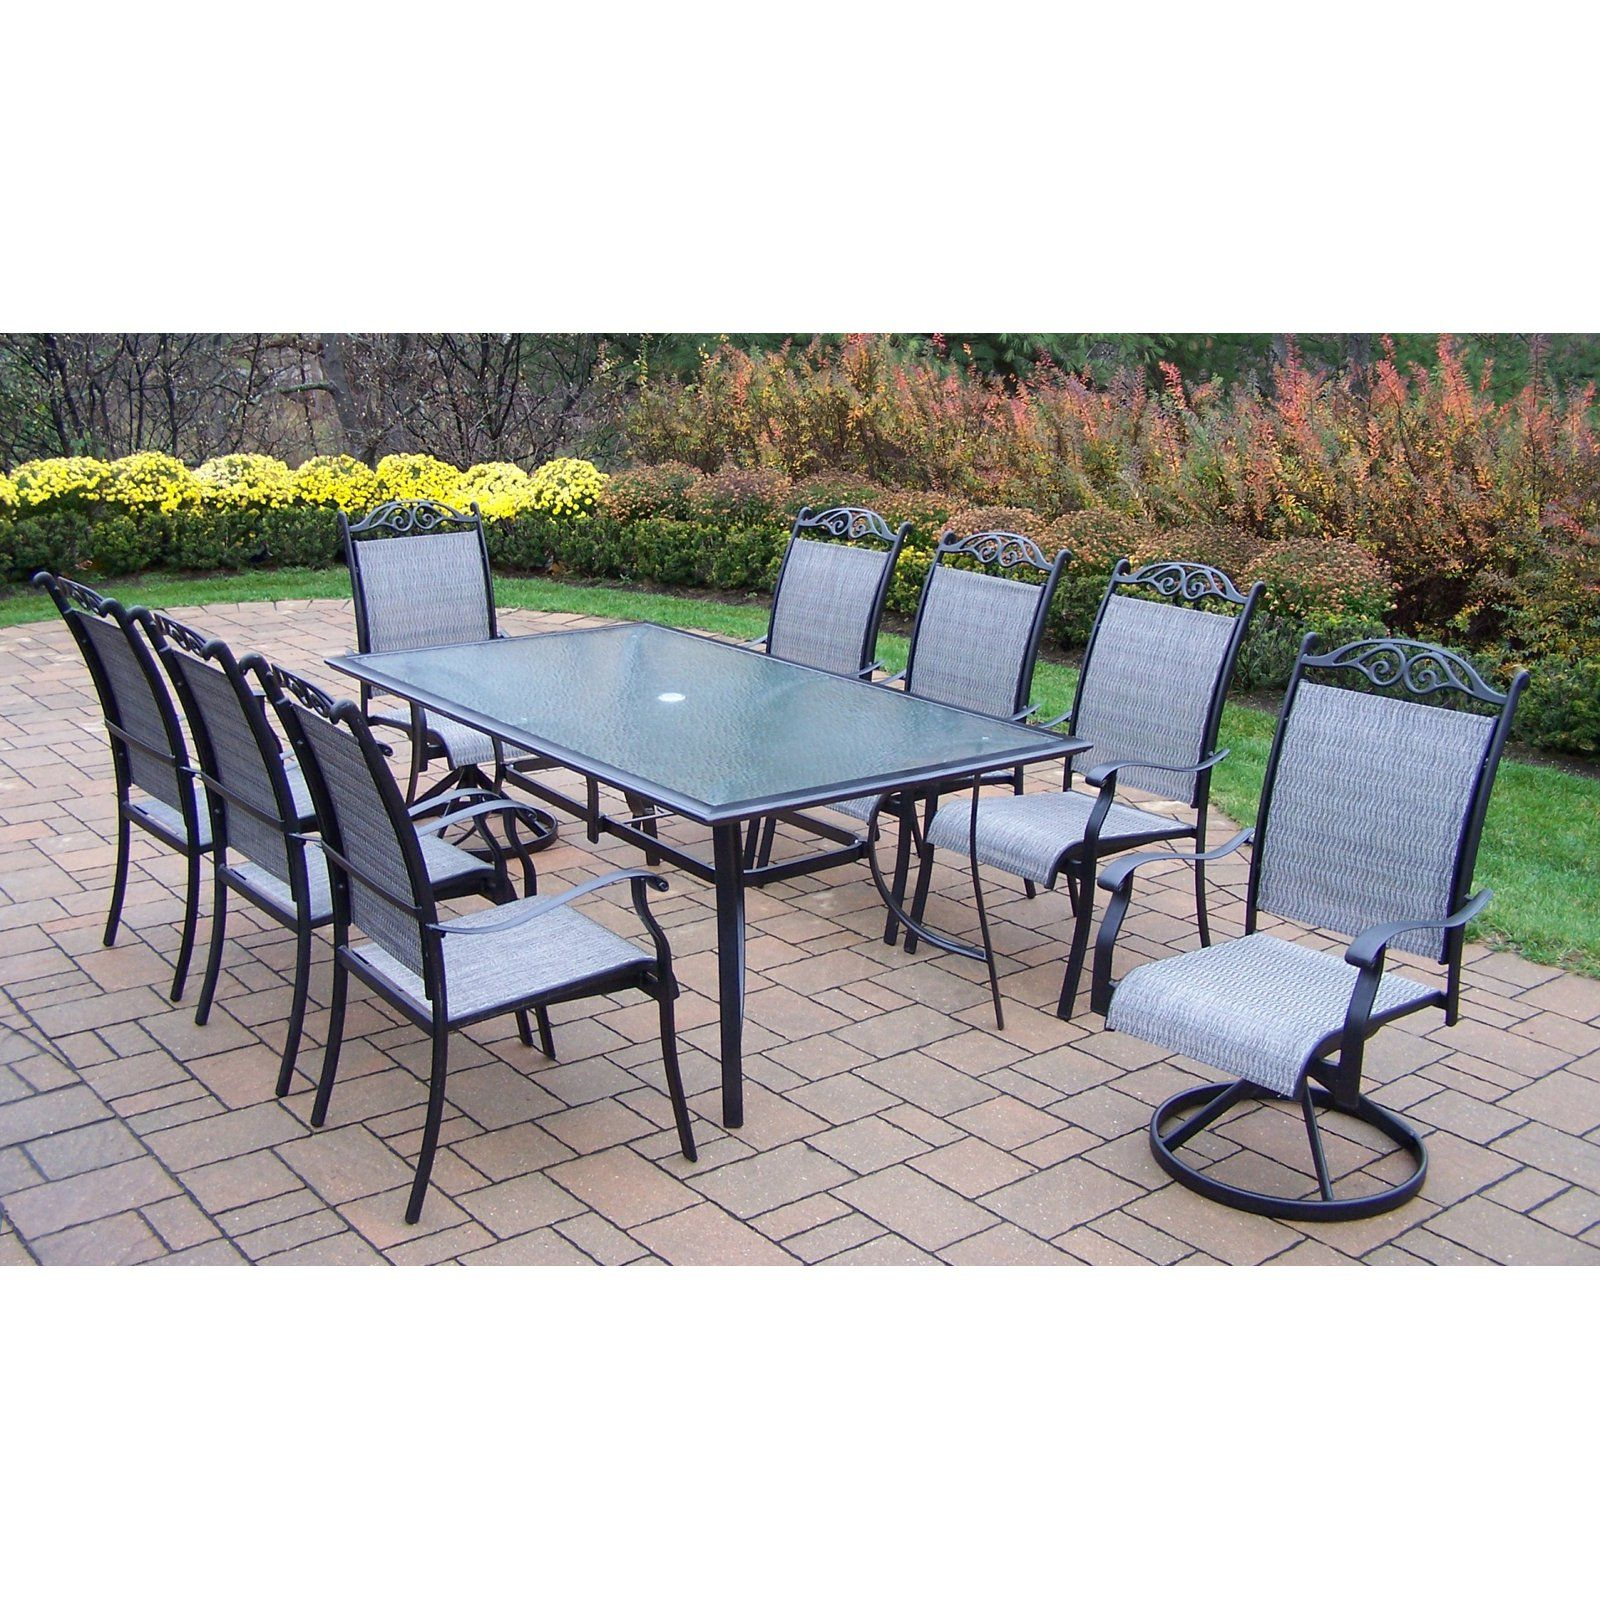 Oakland Living Cascade 9 Piece Sling Patio Dining Set The Is A Chic And Smart Way To Prepare Your